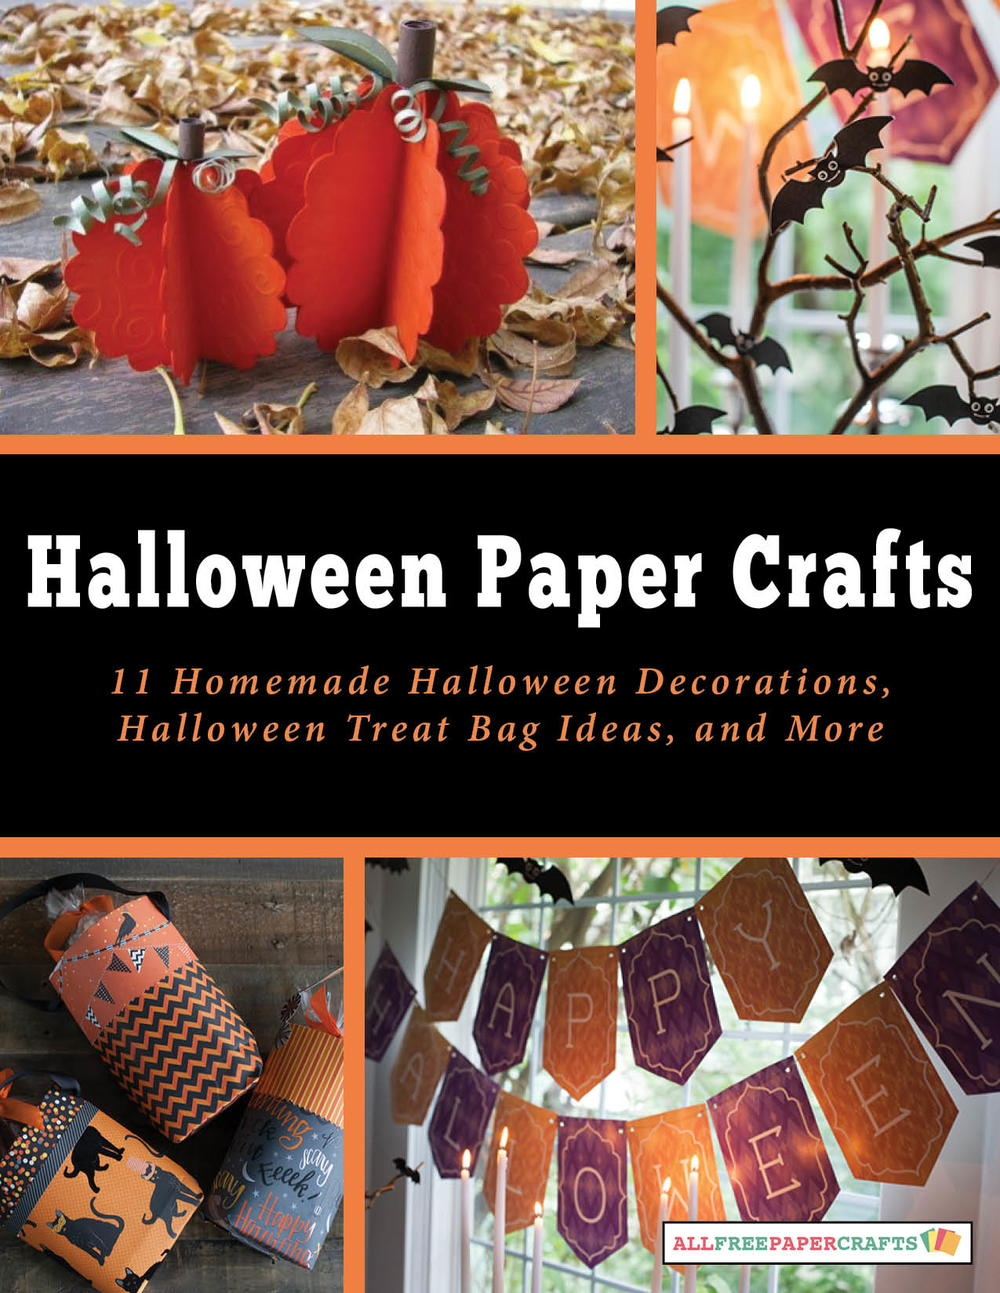 halloween printables halloween party ideas coloring halloween paper crafts 11 homemade halloween decorations halloween treat bag ideas and more